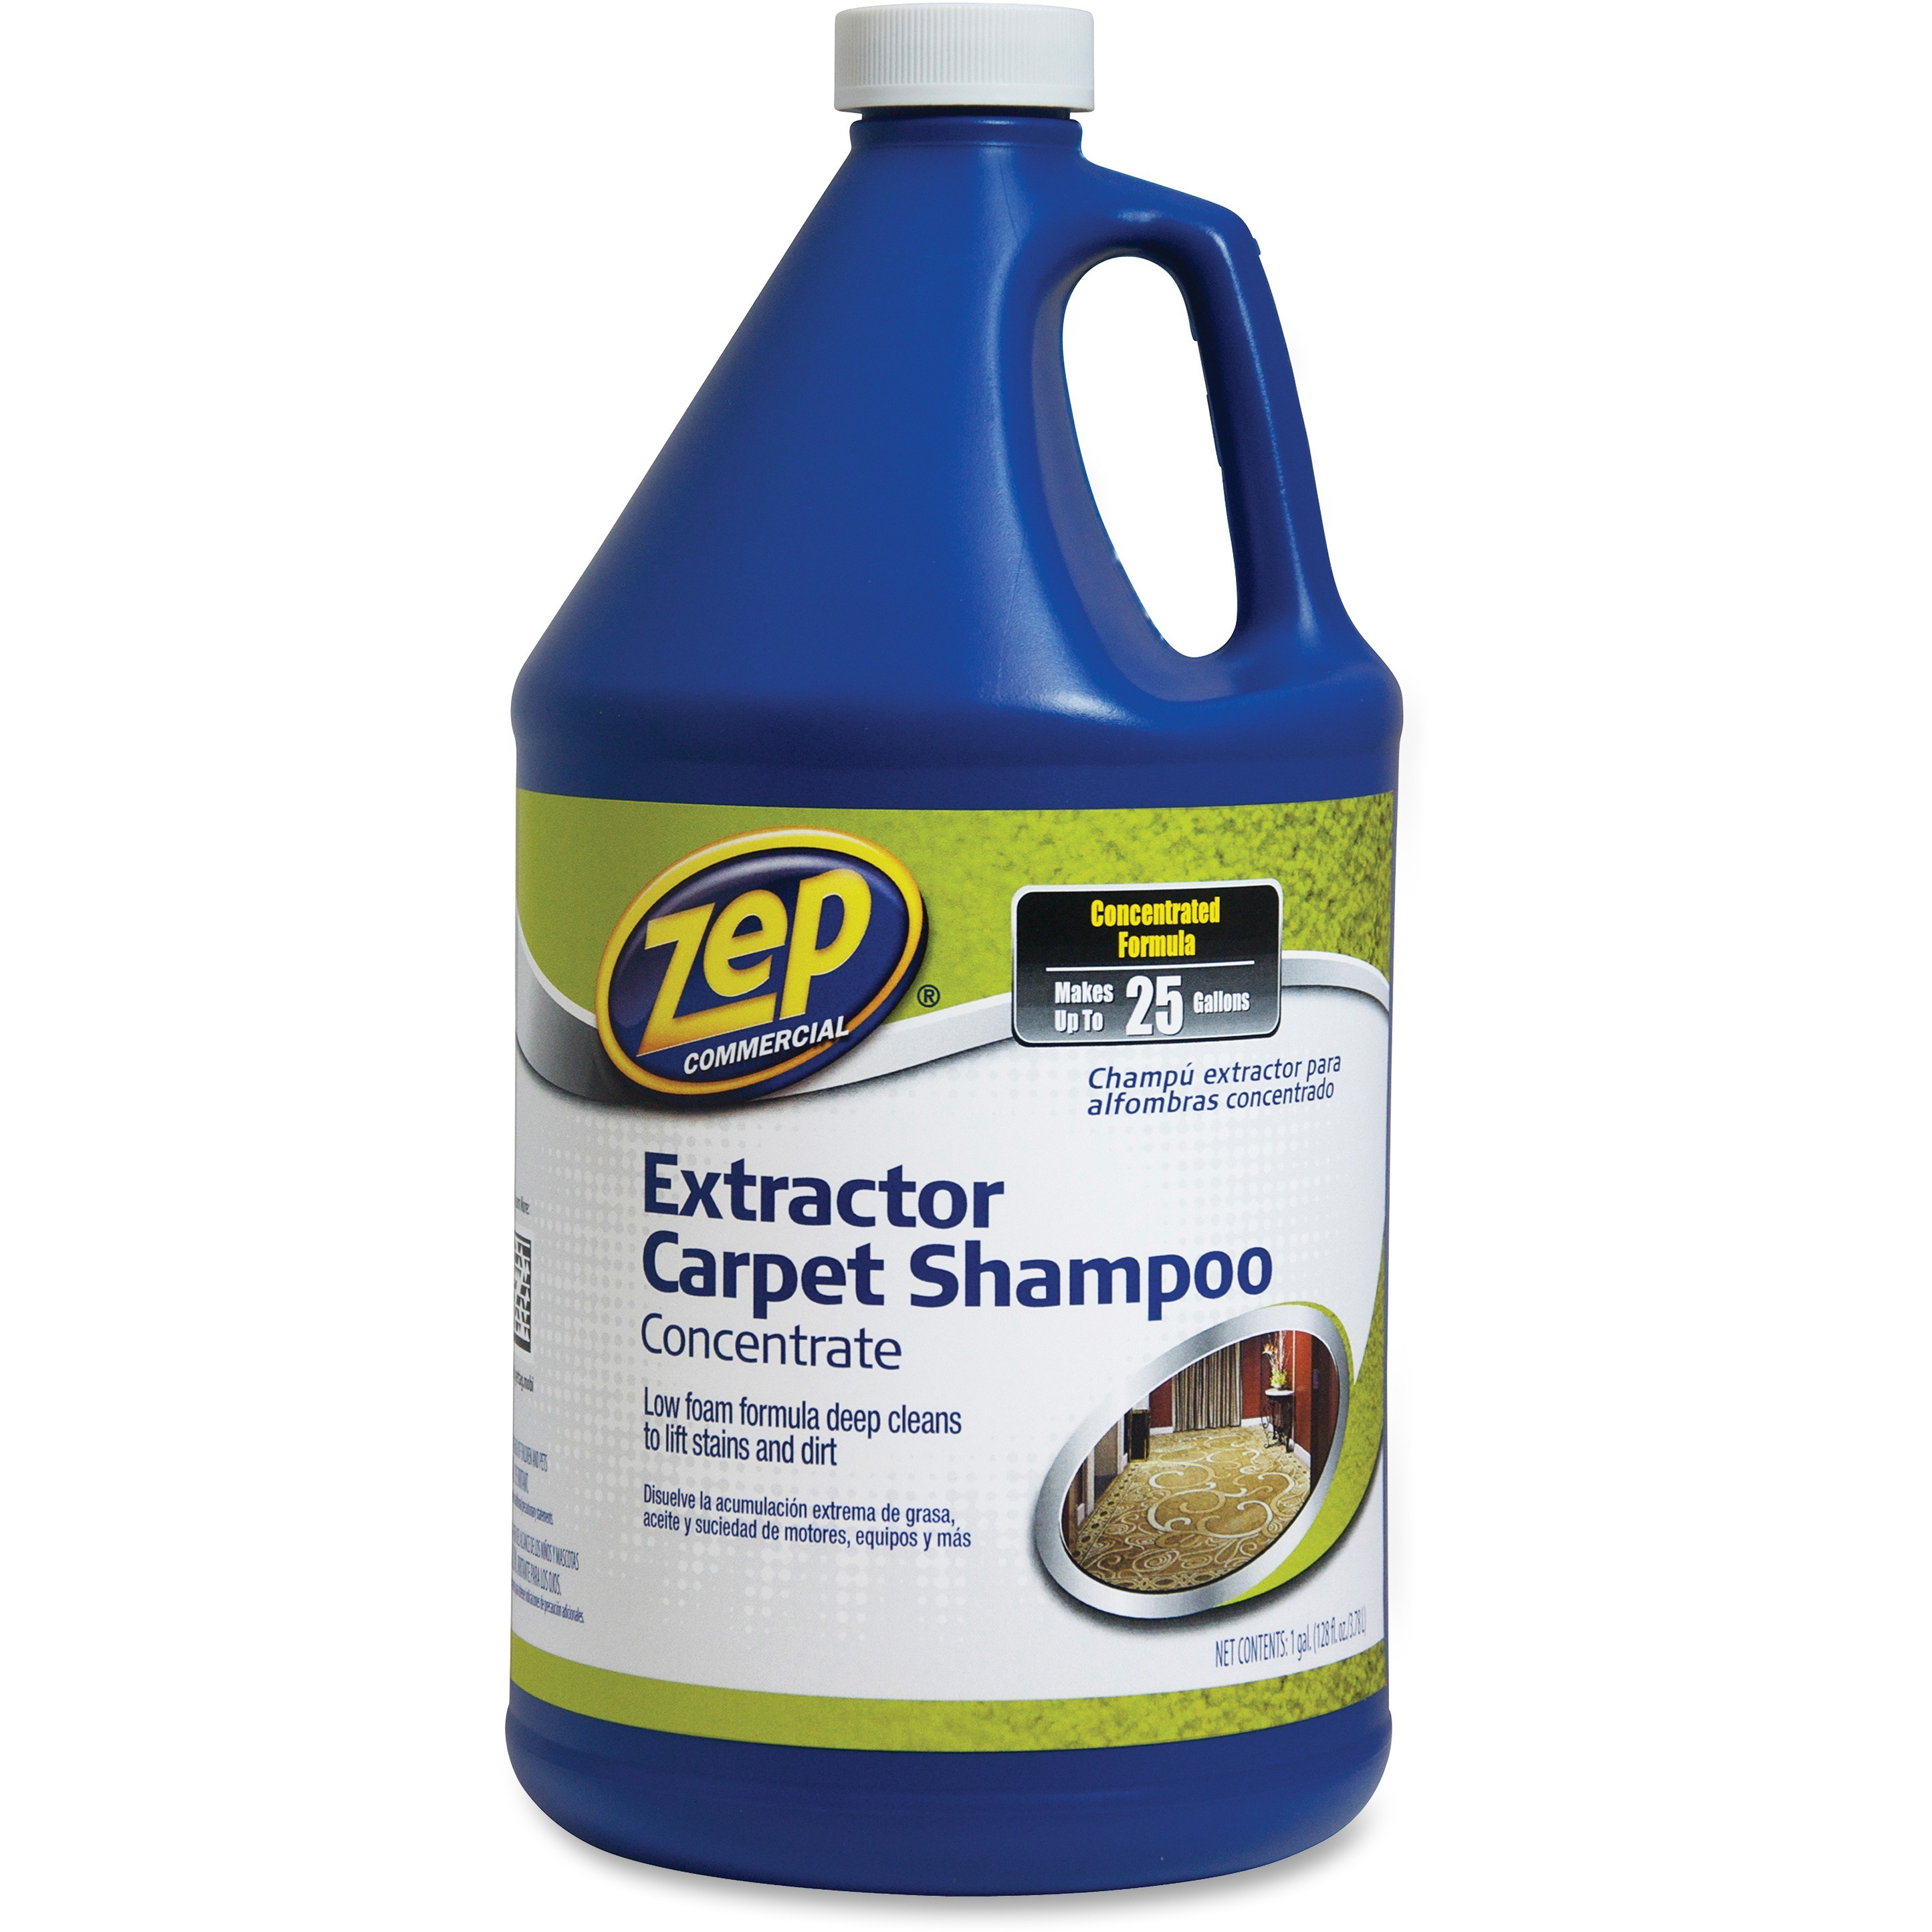 Zep Commercial, ZPE1041690, Extractor Carpet Shampoo Concentrate, 1 Each, Blue